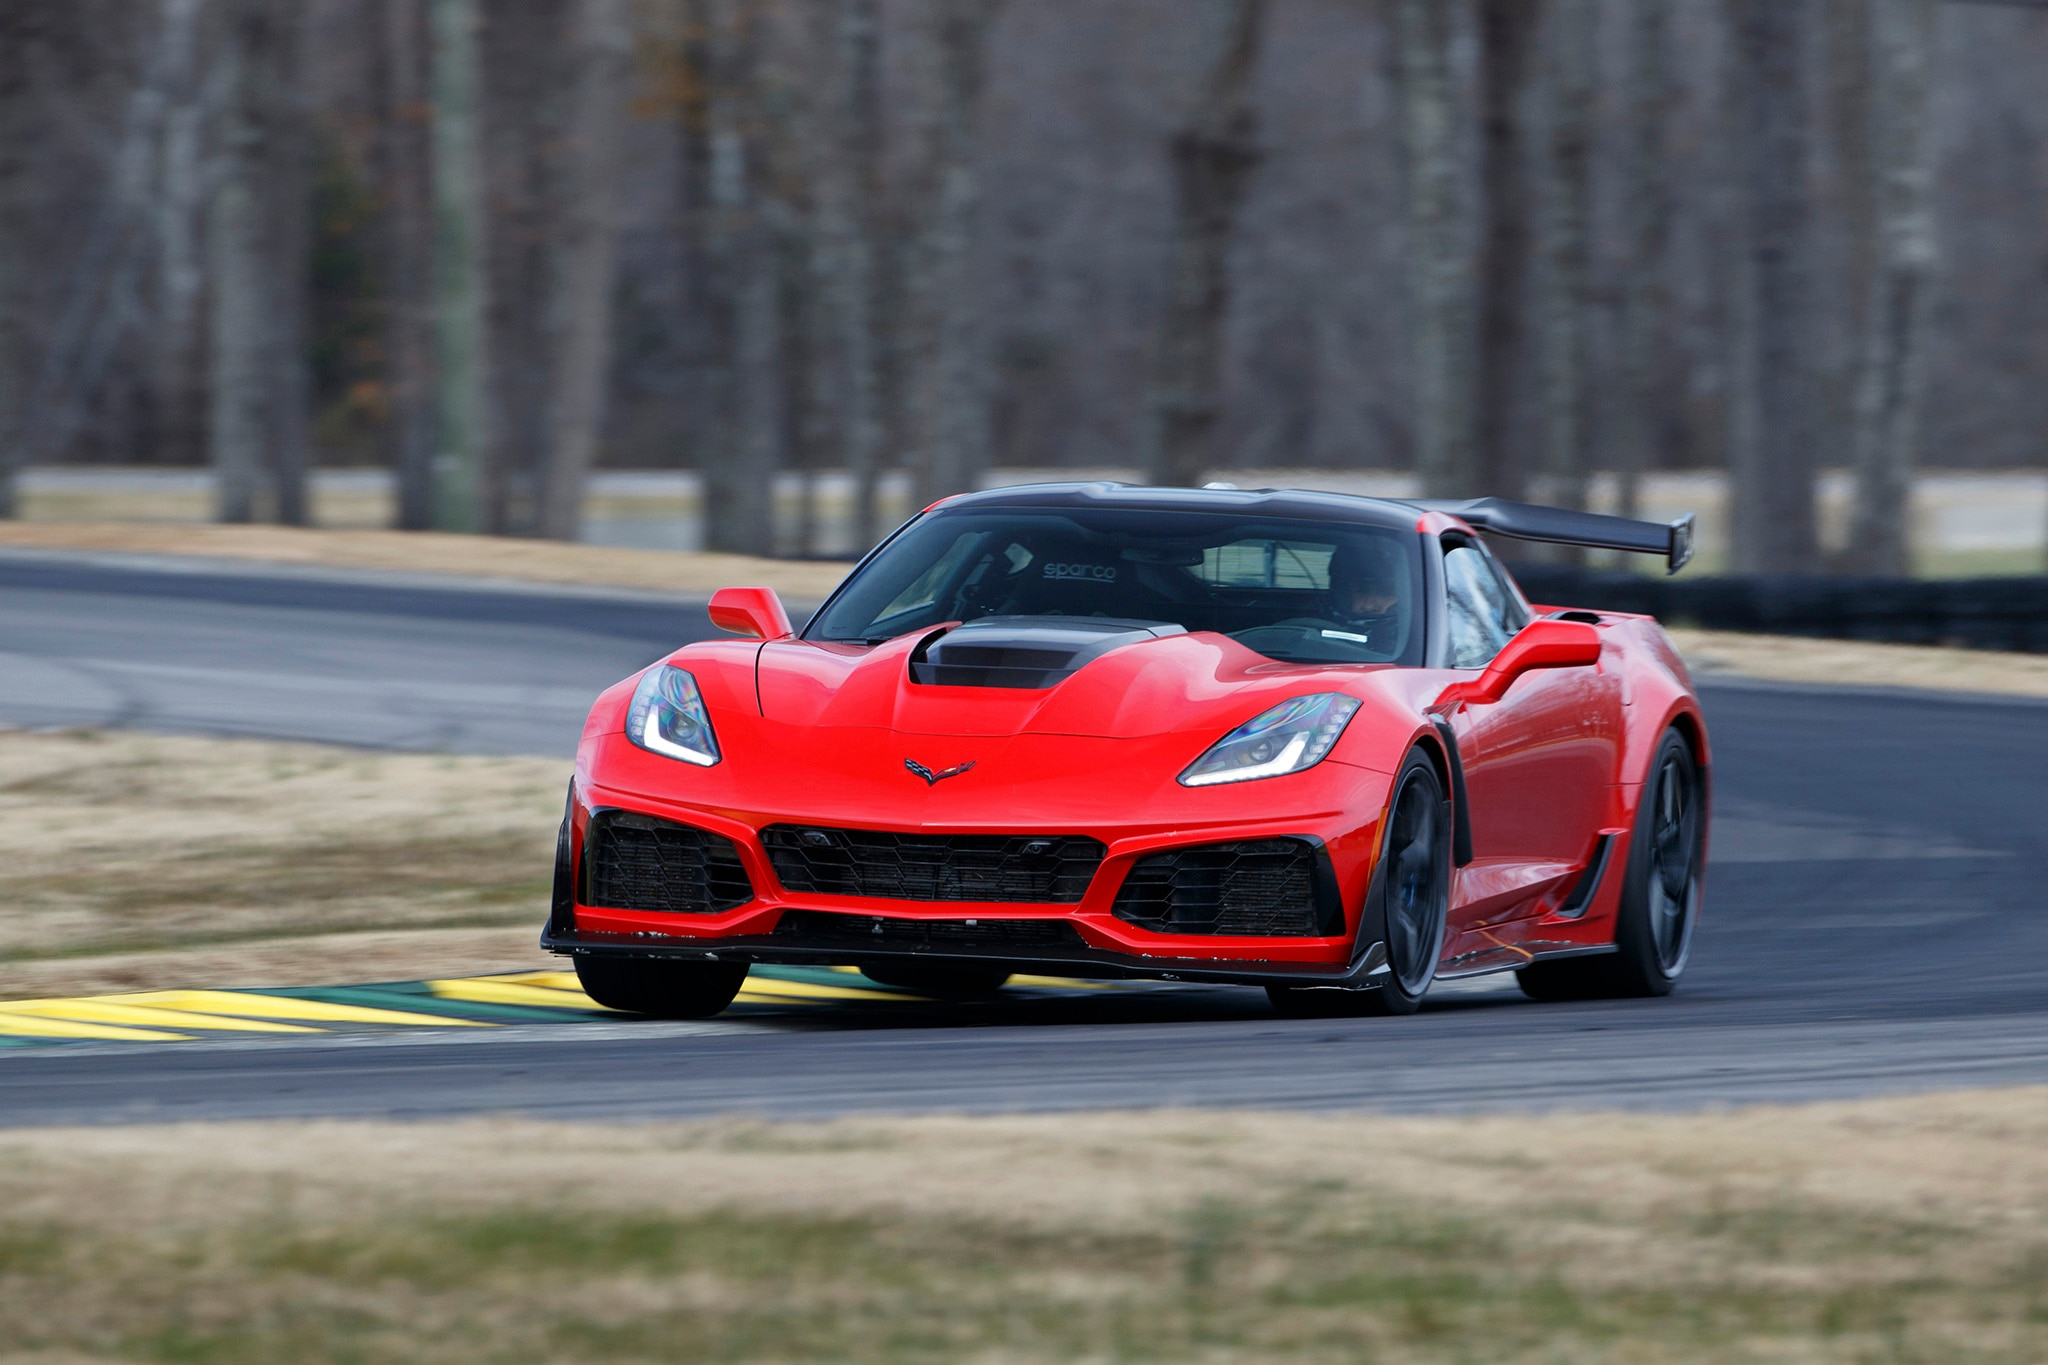 Corvette ZR1 sets Virginia International Raceway lap record